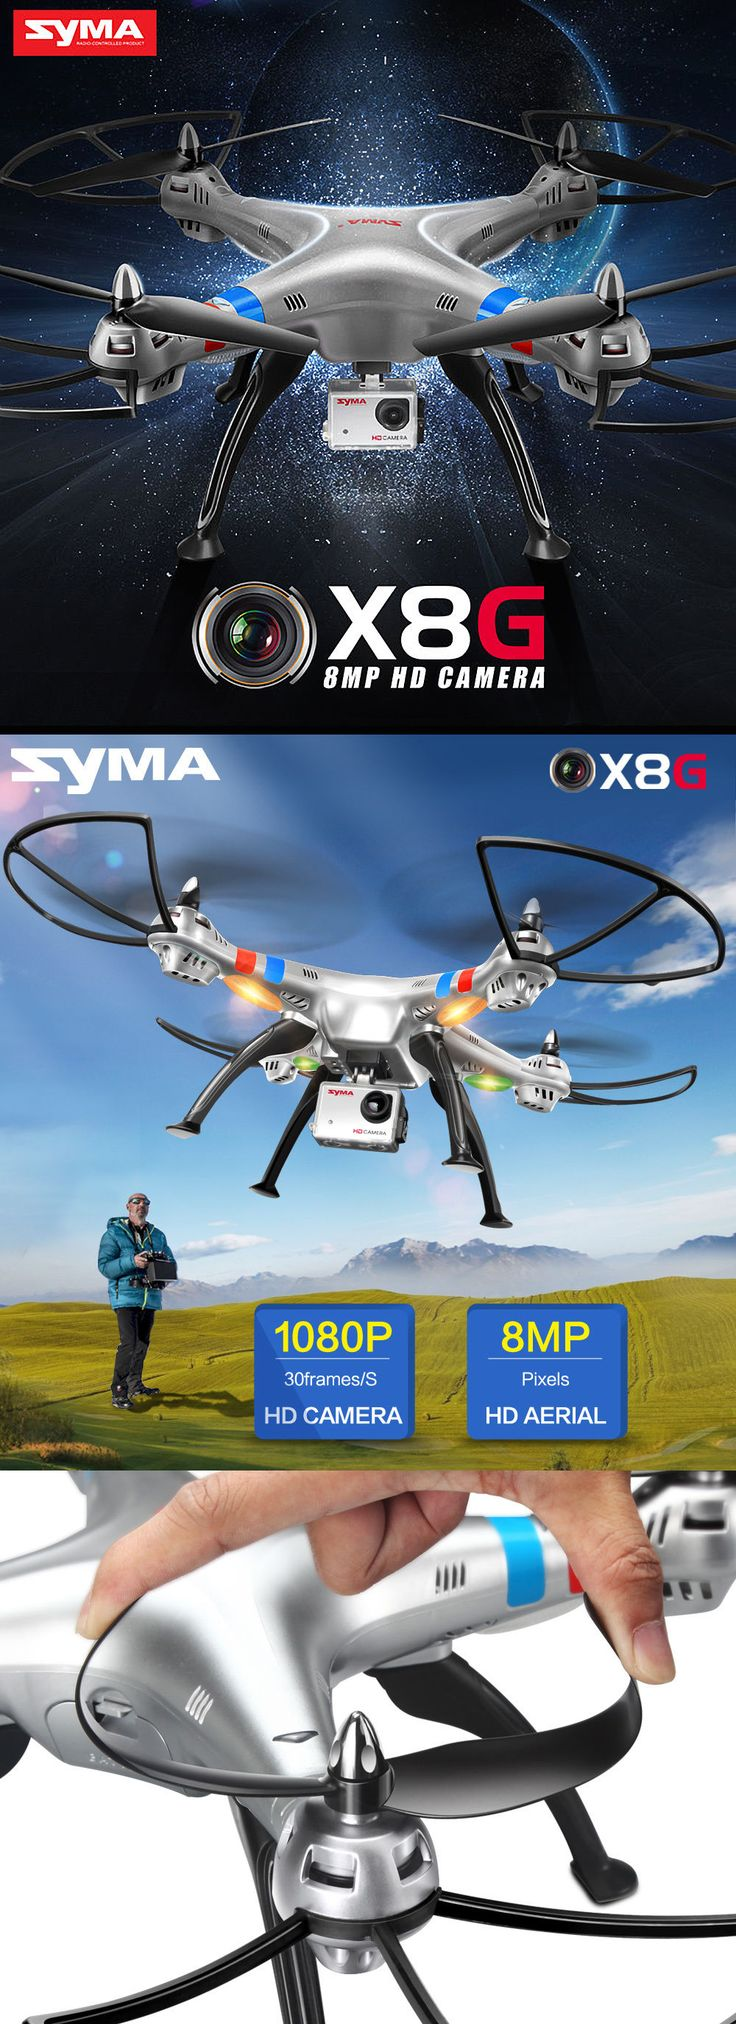 Syma X8G 2.4Ghz 4CH 6-Axis Gyro 8MP HD Camera RC Quadcopter Drone GoPro Style | drone | syma | drone with camera | drone camera | drones for sale | dron | camera drone | best drones | rc drone | quadcopter with camera | best drones with camera | rc quadcopter | gopro drone | best camera drone | best quadcopter | quadcopter drone | quadcopter |